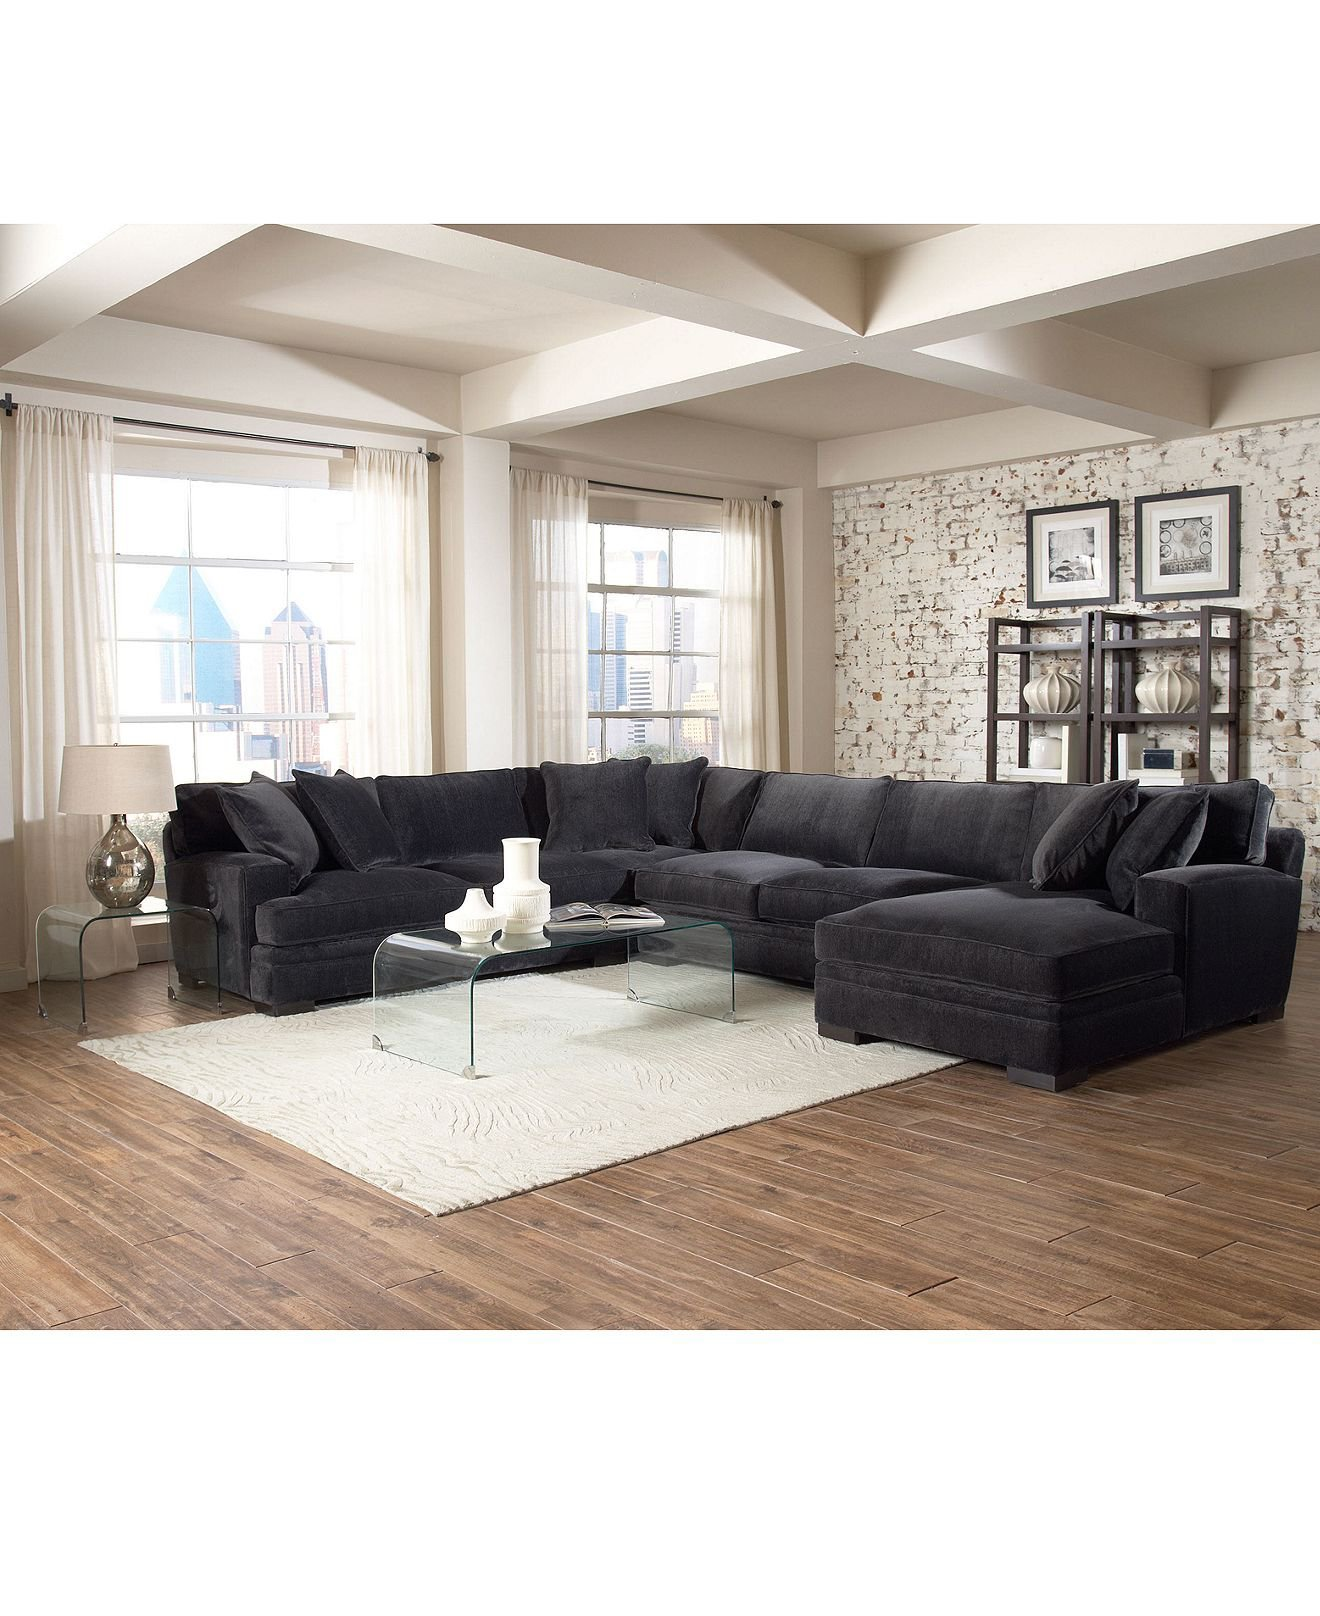 Www Macyfurniture: Teddy Fabric Sectional Living Room From Macys